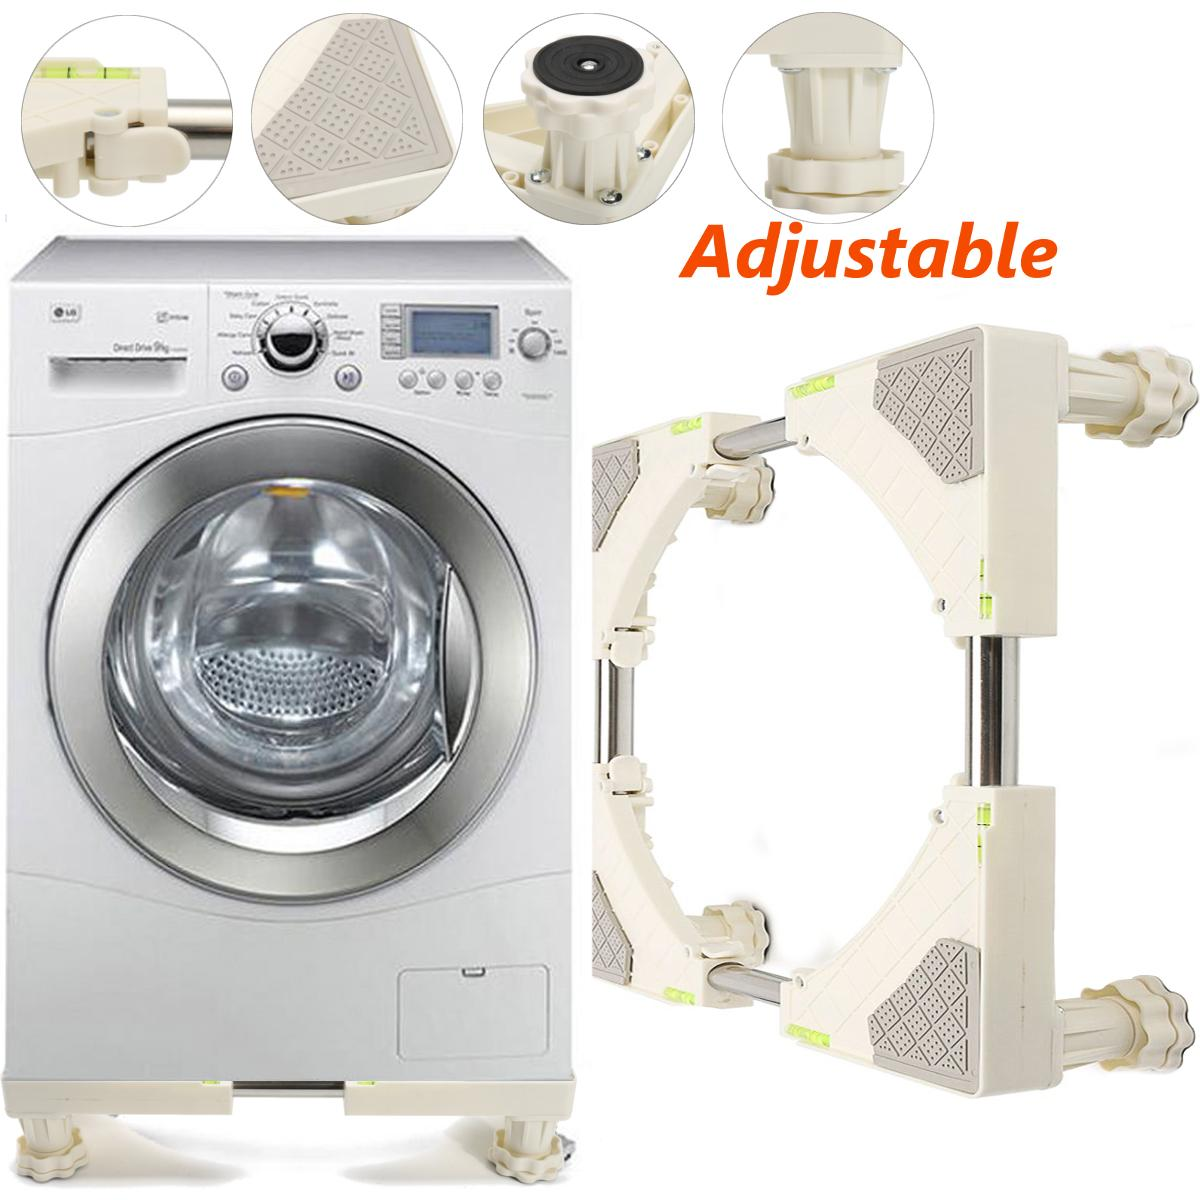 Washer Dryer Accessories For Sale Parts Prices Electronic Timer Circuit Washing Machine Adjustable Refrigerator Undercarriage Bracket Base Stand White